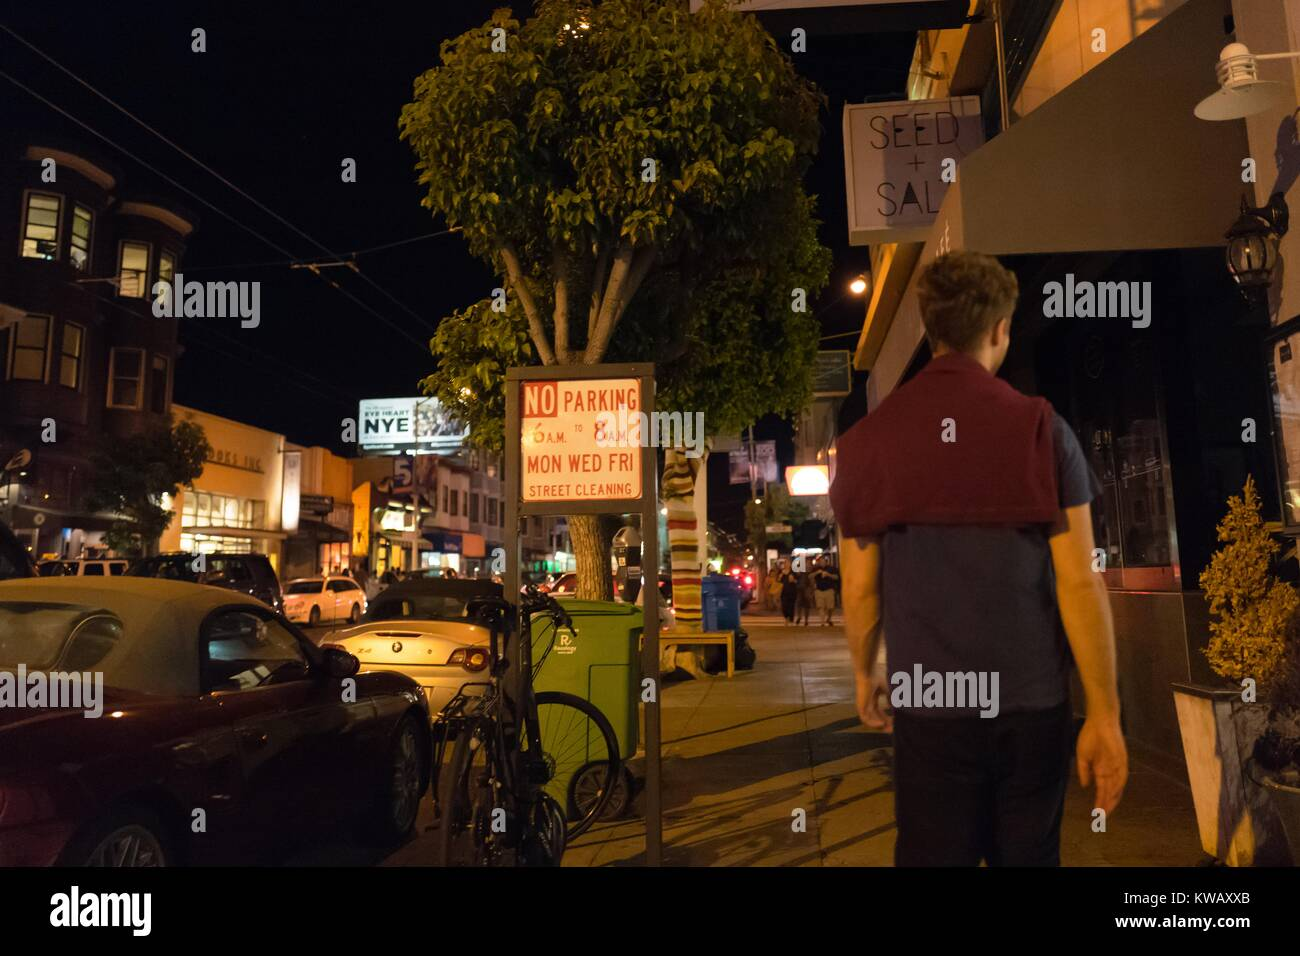 A man who has a maroon sweater draped over his shoulders stands on the sidewalk, San Francisco, California, October - Stock Image